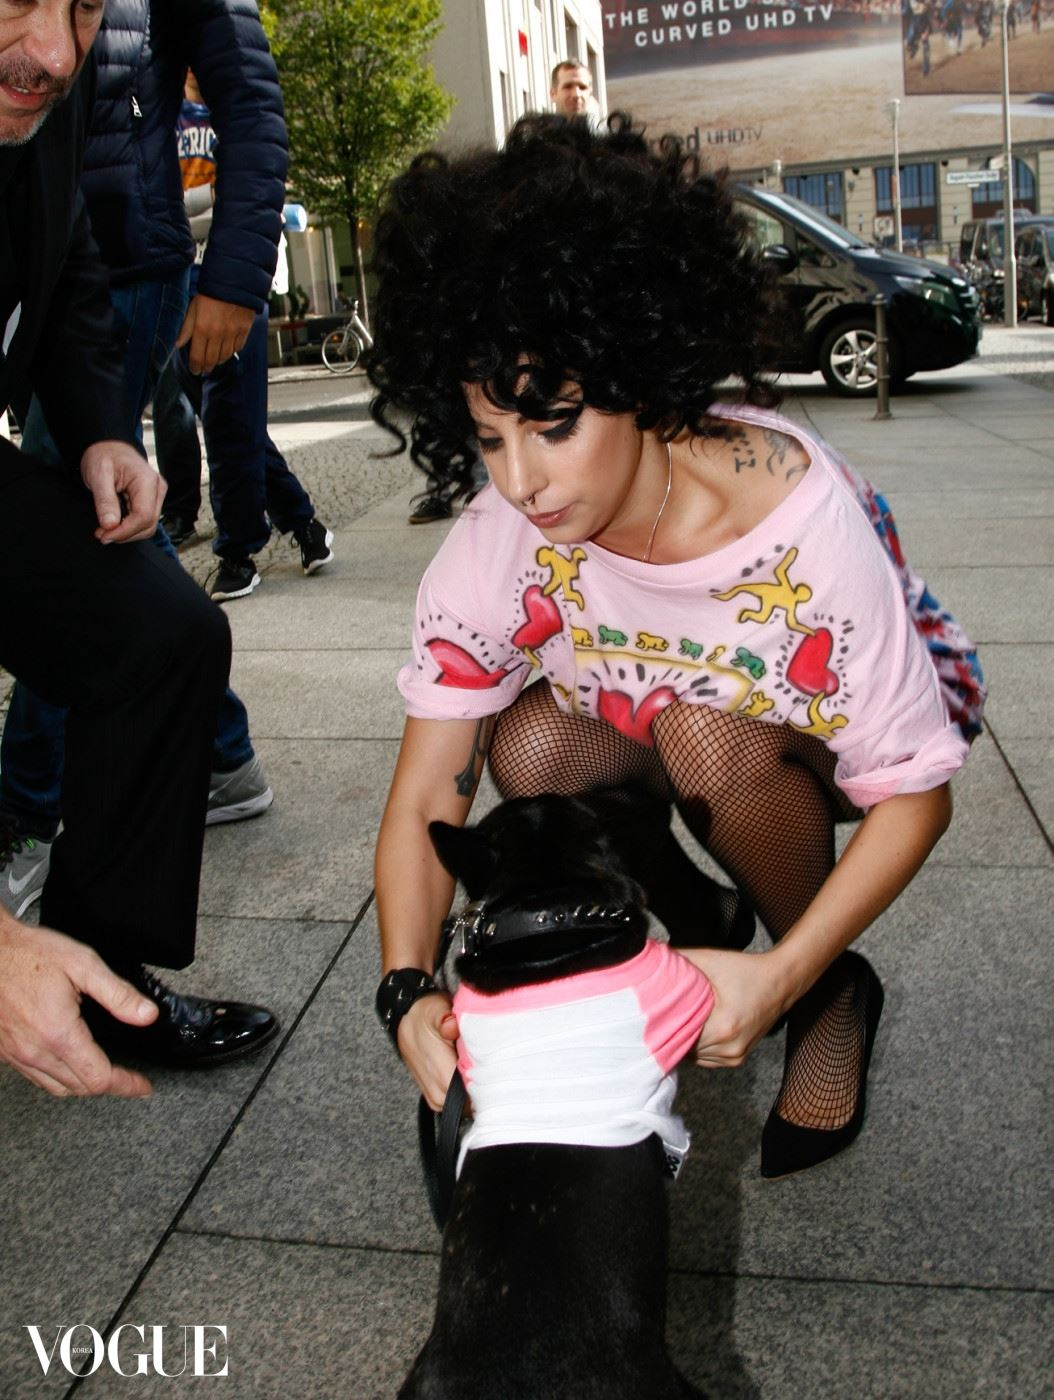 ***MANDATORY BYLINE TO READ INFphoto.com ONLY*** Lady Gaga and her dog arriving at the Ritz-Carlton Hotel in Berlin, Germany. Pictured: Lady Gaga Ref: SPL860562  081014   Picture by: INFphoto.com